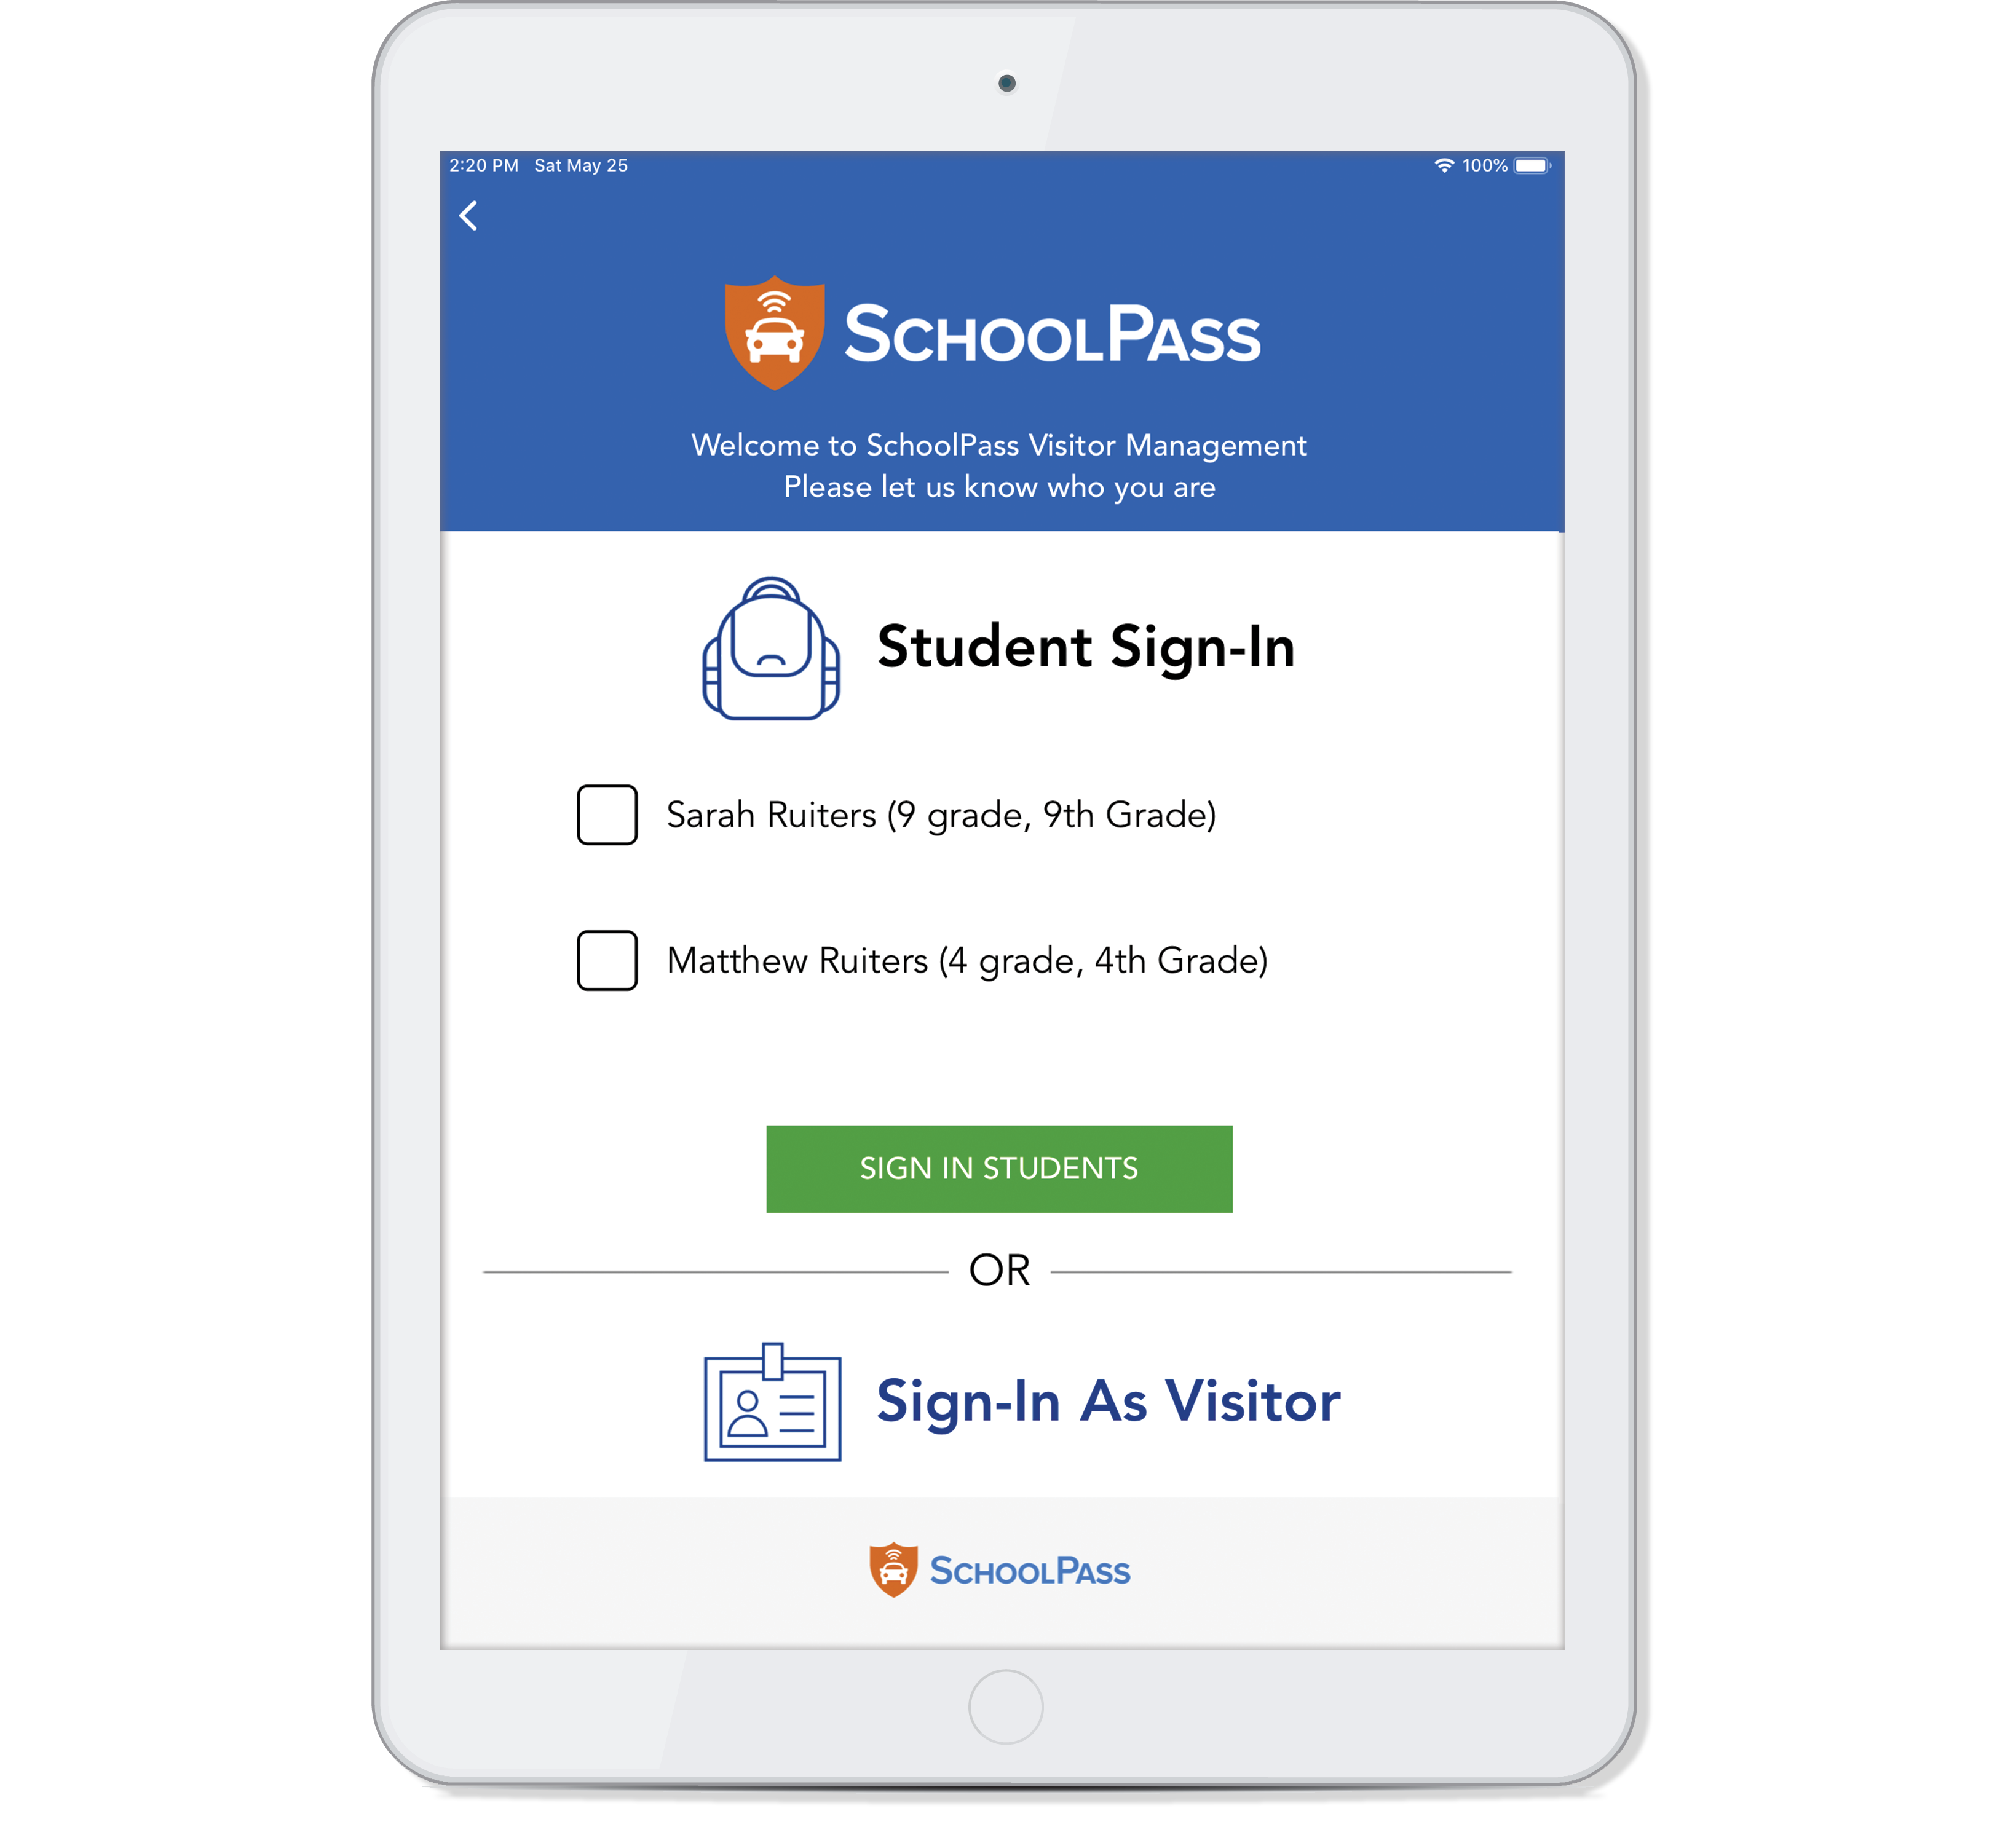 Student Sign-in